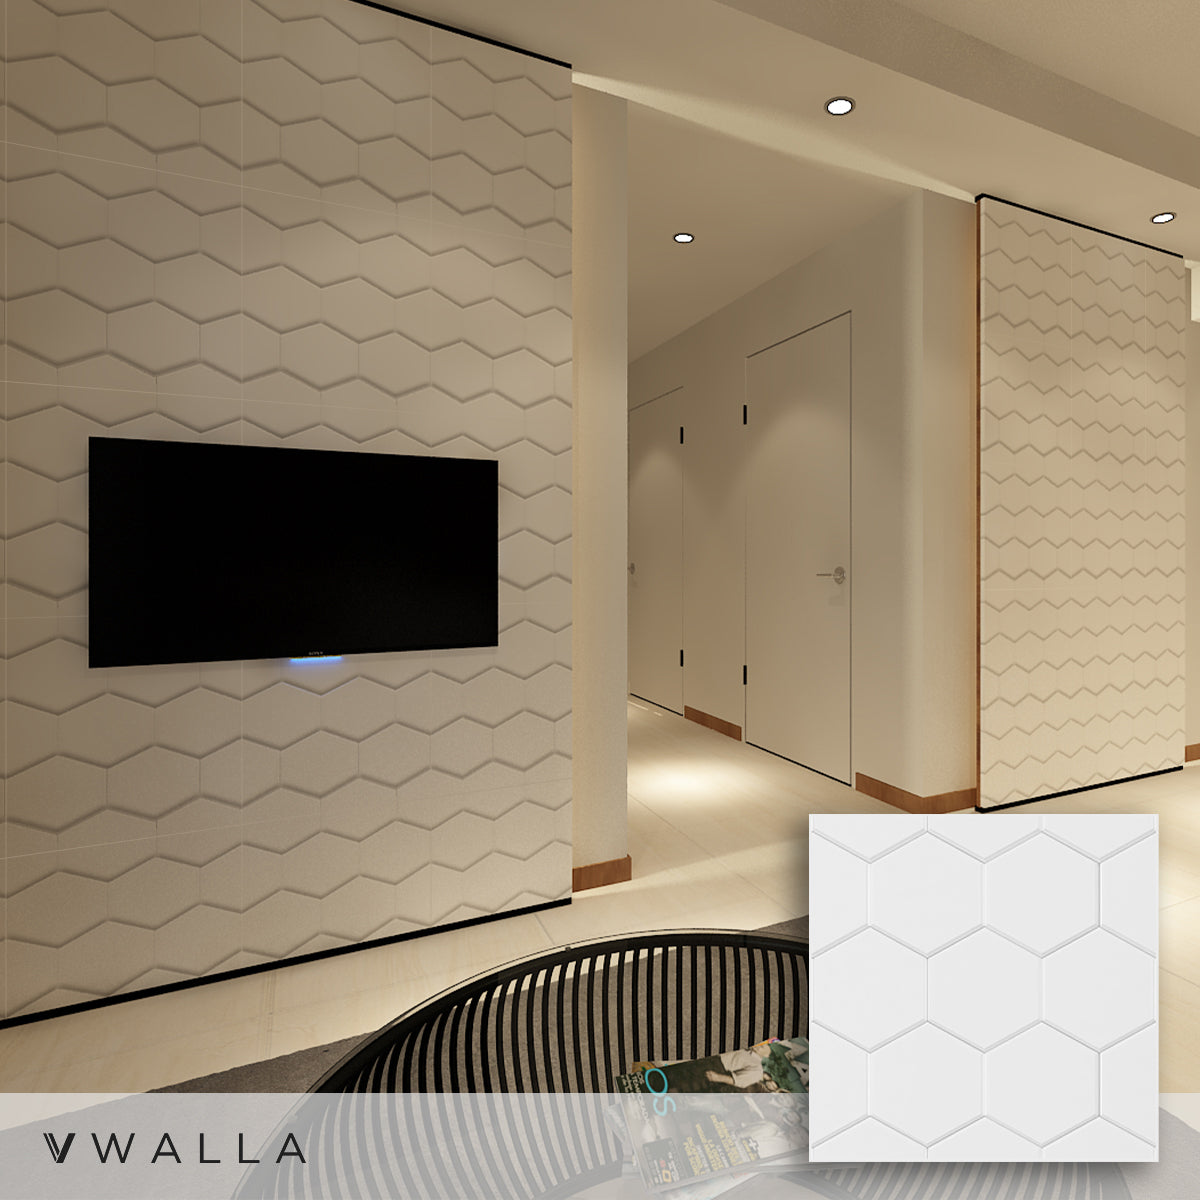 3D Wall Panels - Honeycomb